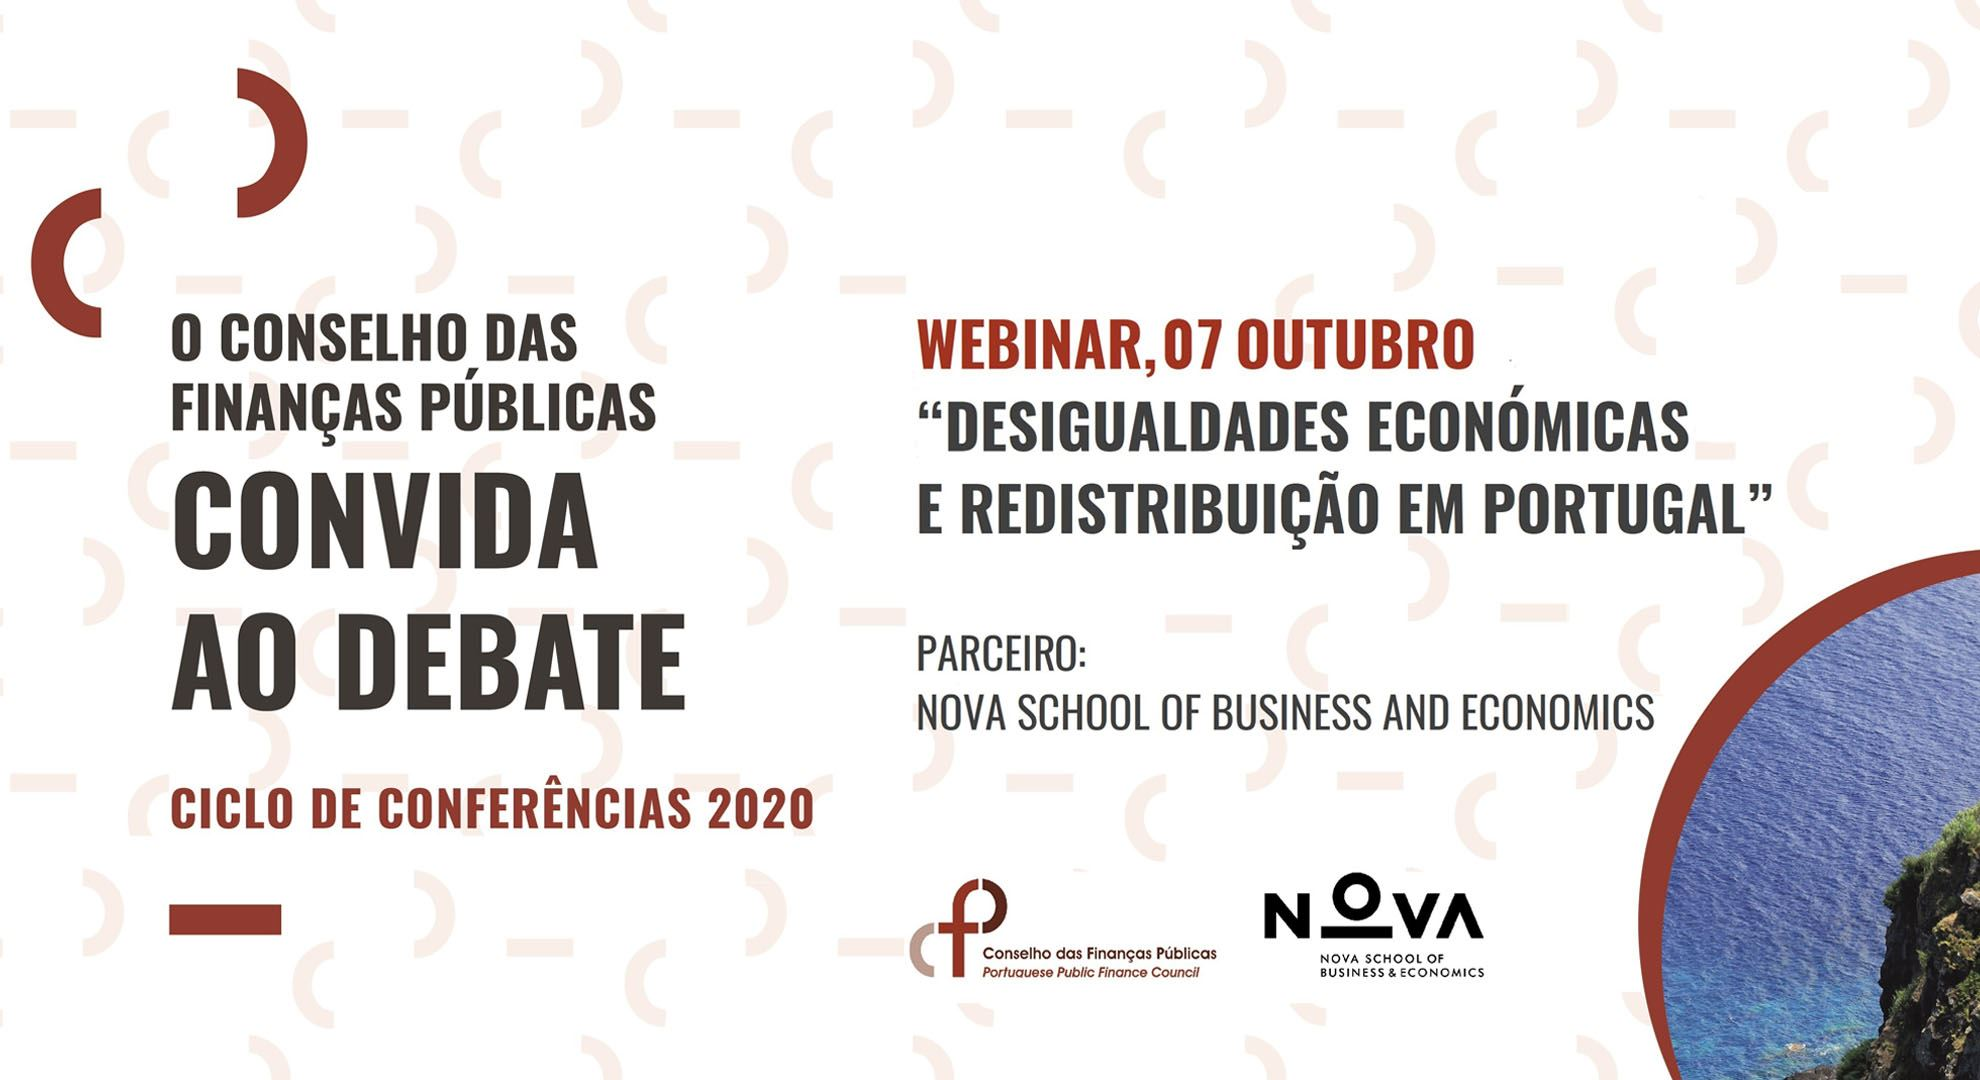 2020 Conference Cycle | Economic Inequality and Redistribution in Portugal